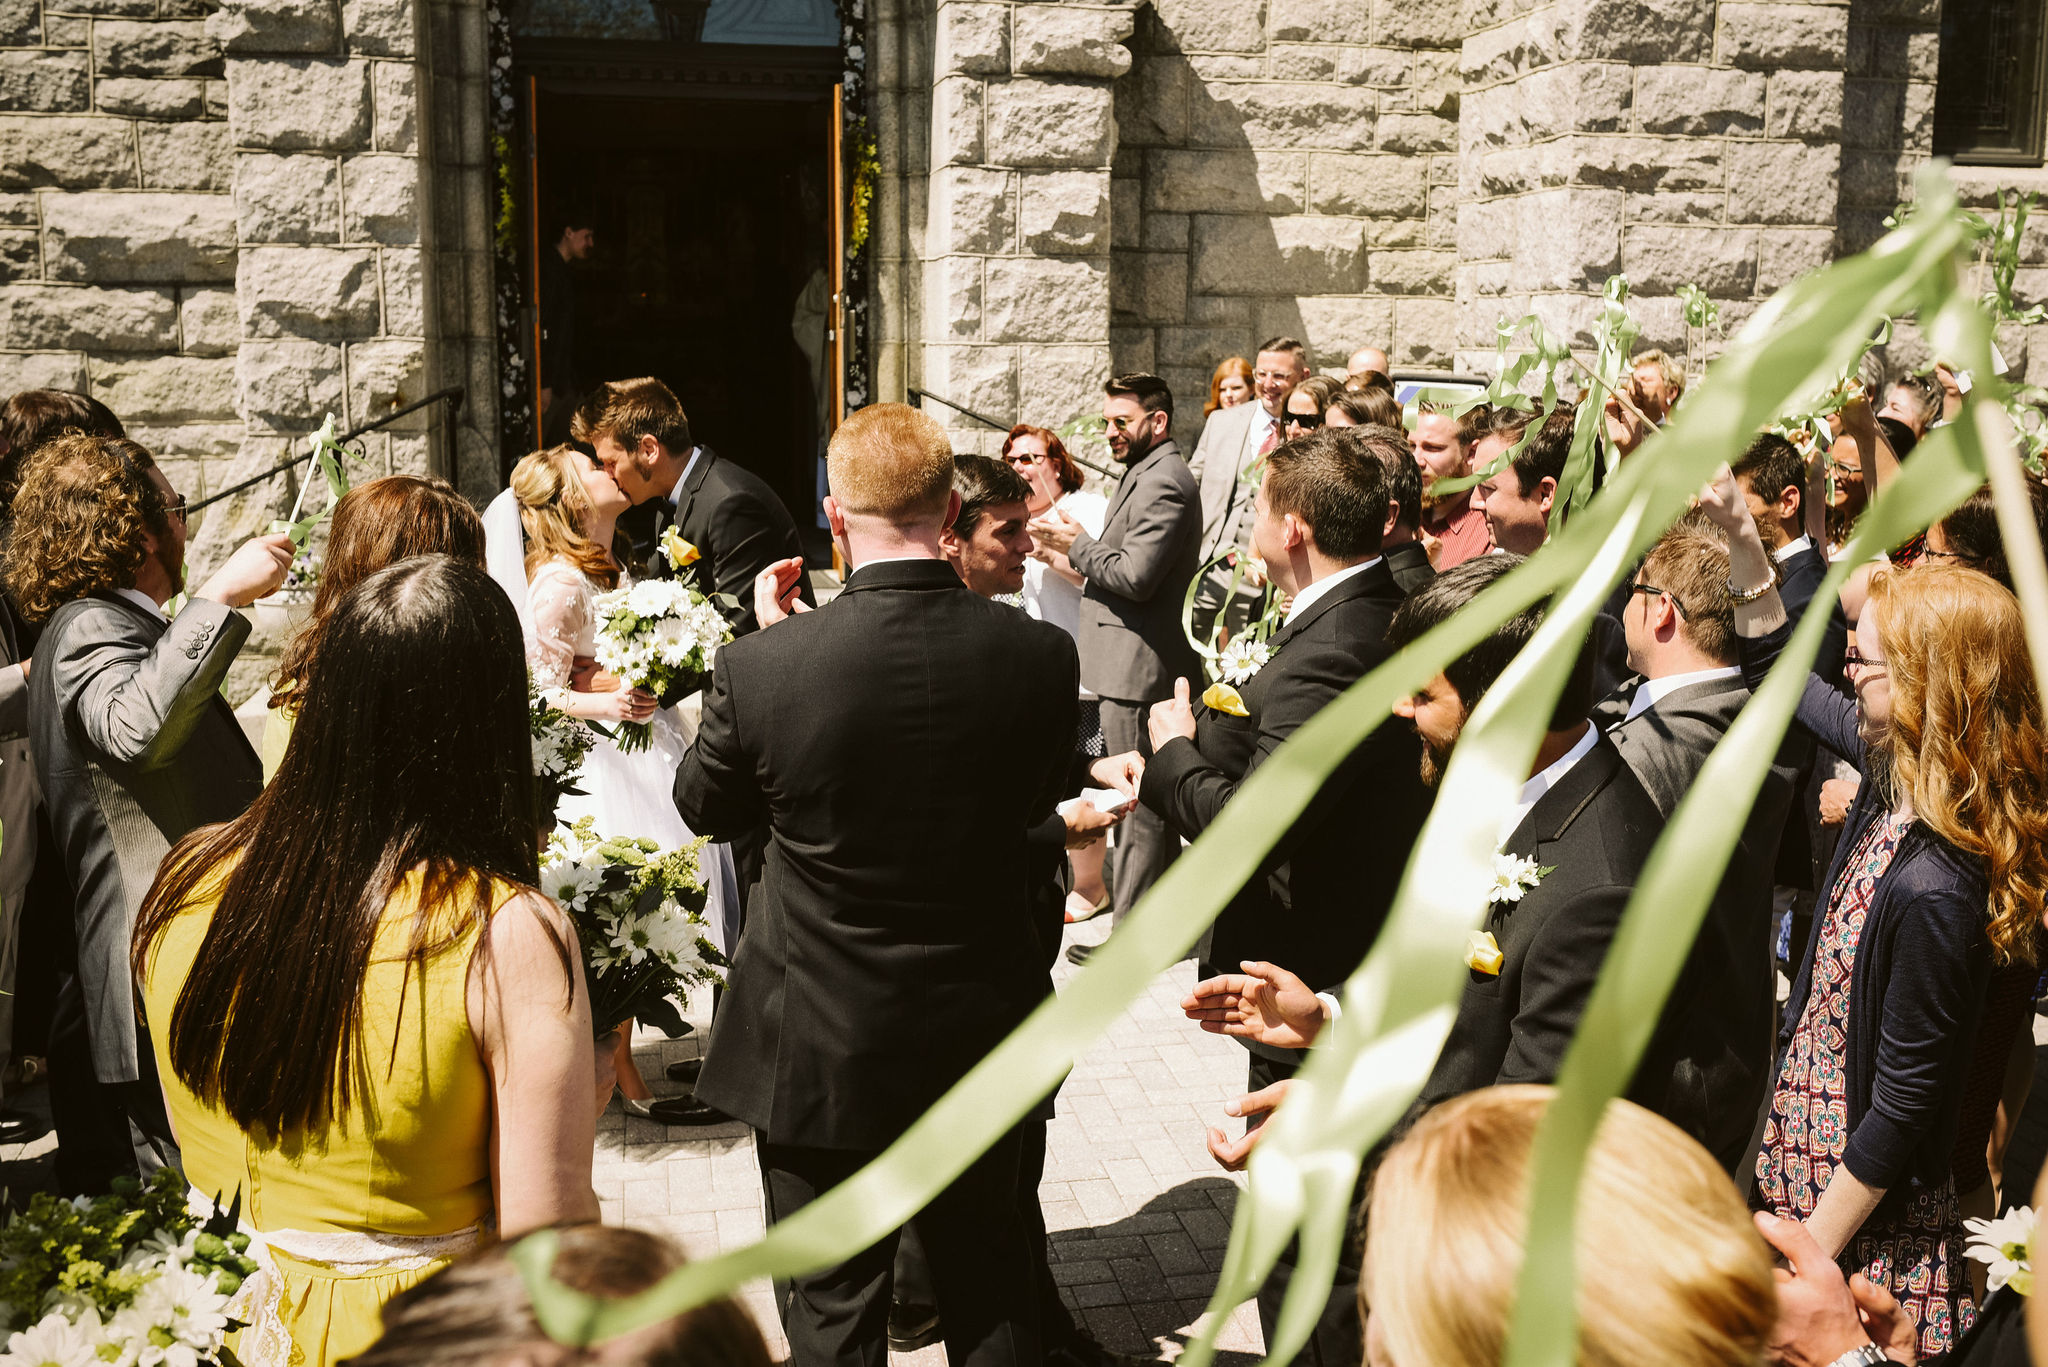 Baltimore, Church Wedding, Maryland Wedding Photographer, Vintage, Classic, Bride and Groom Kissing Outside Church, Wedding Guests Gathered Around Bride and Groom